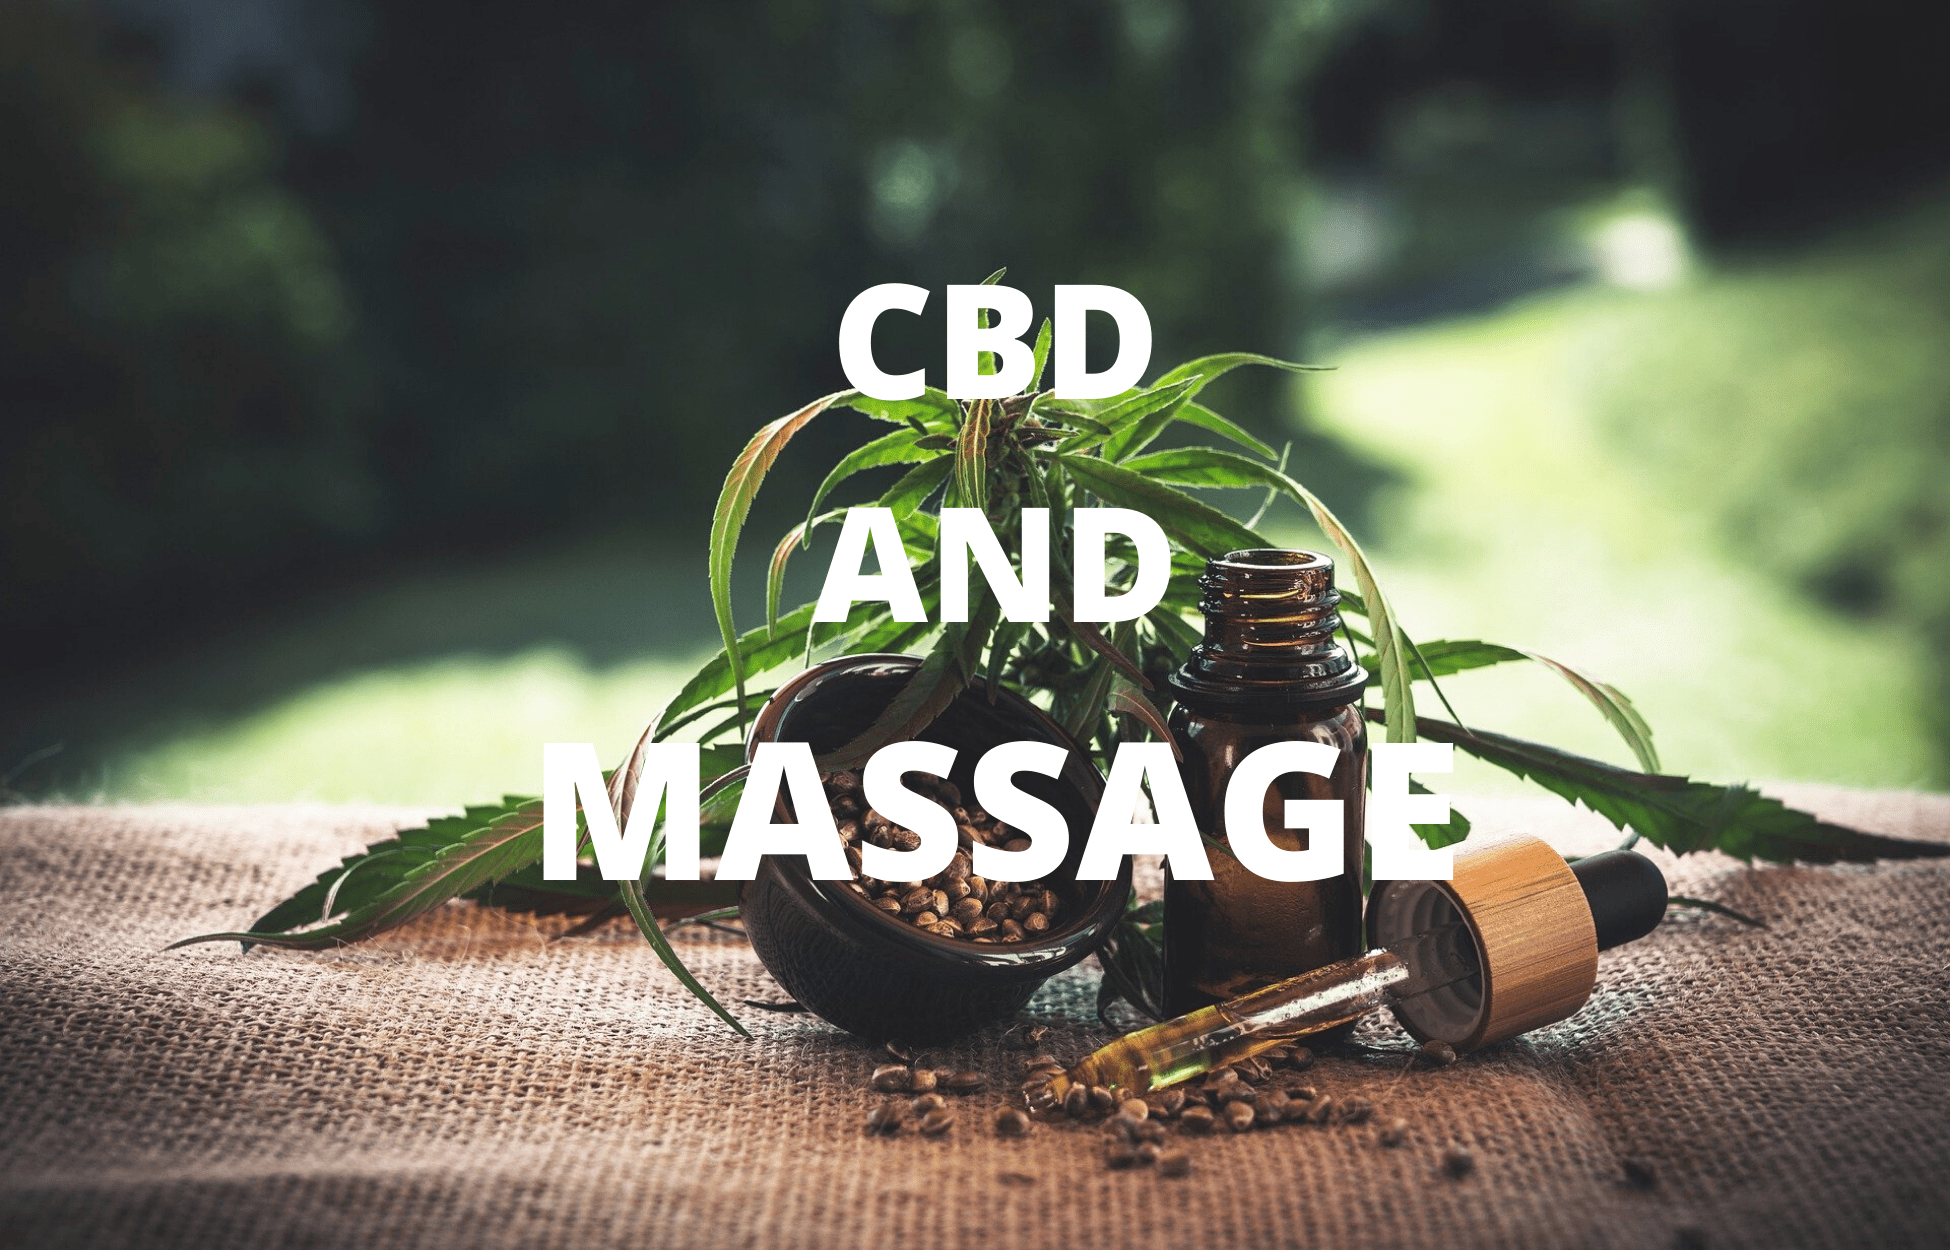 cbd-and-massage-wa-seattle